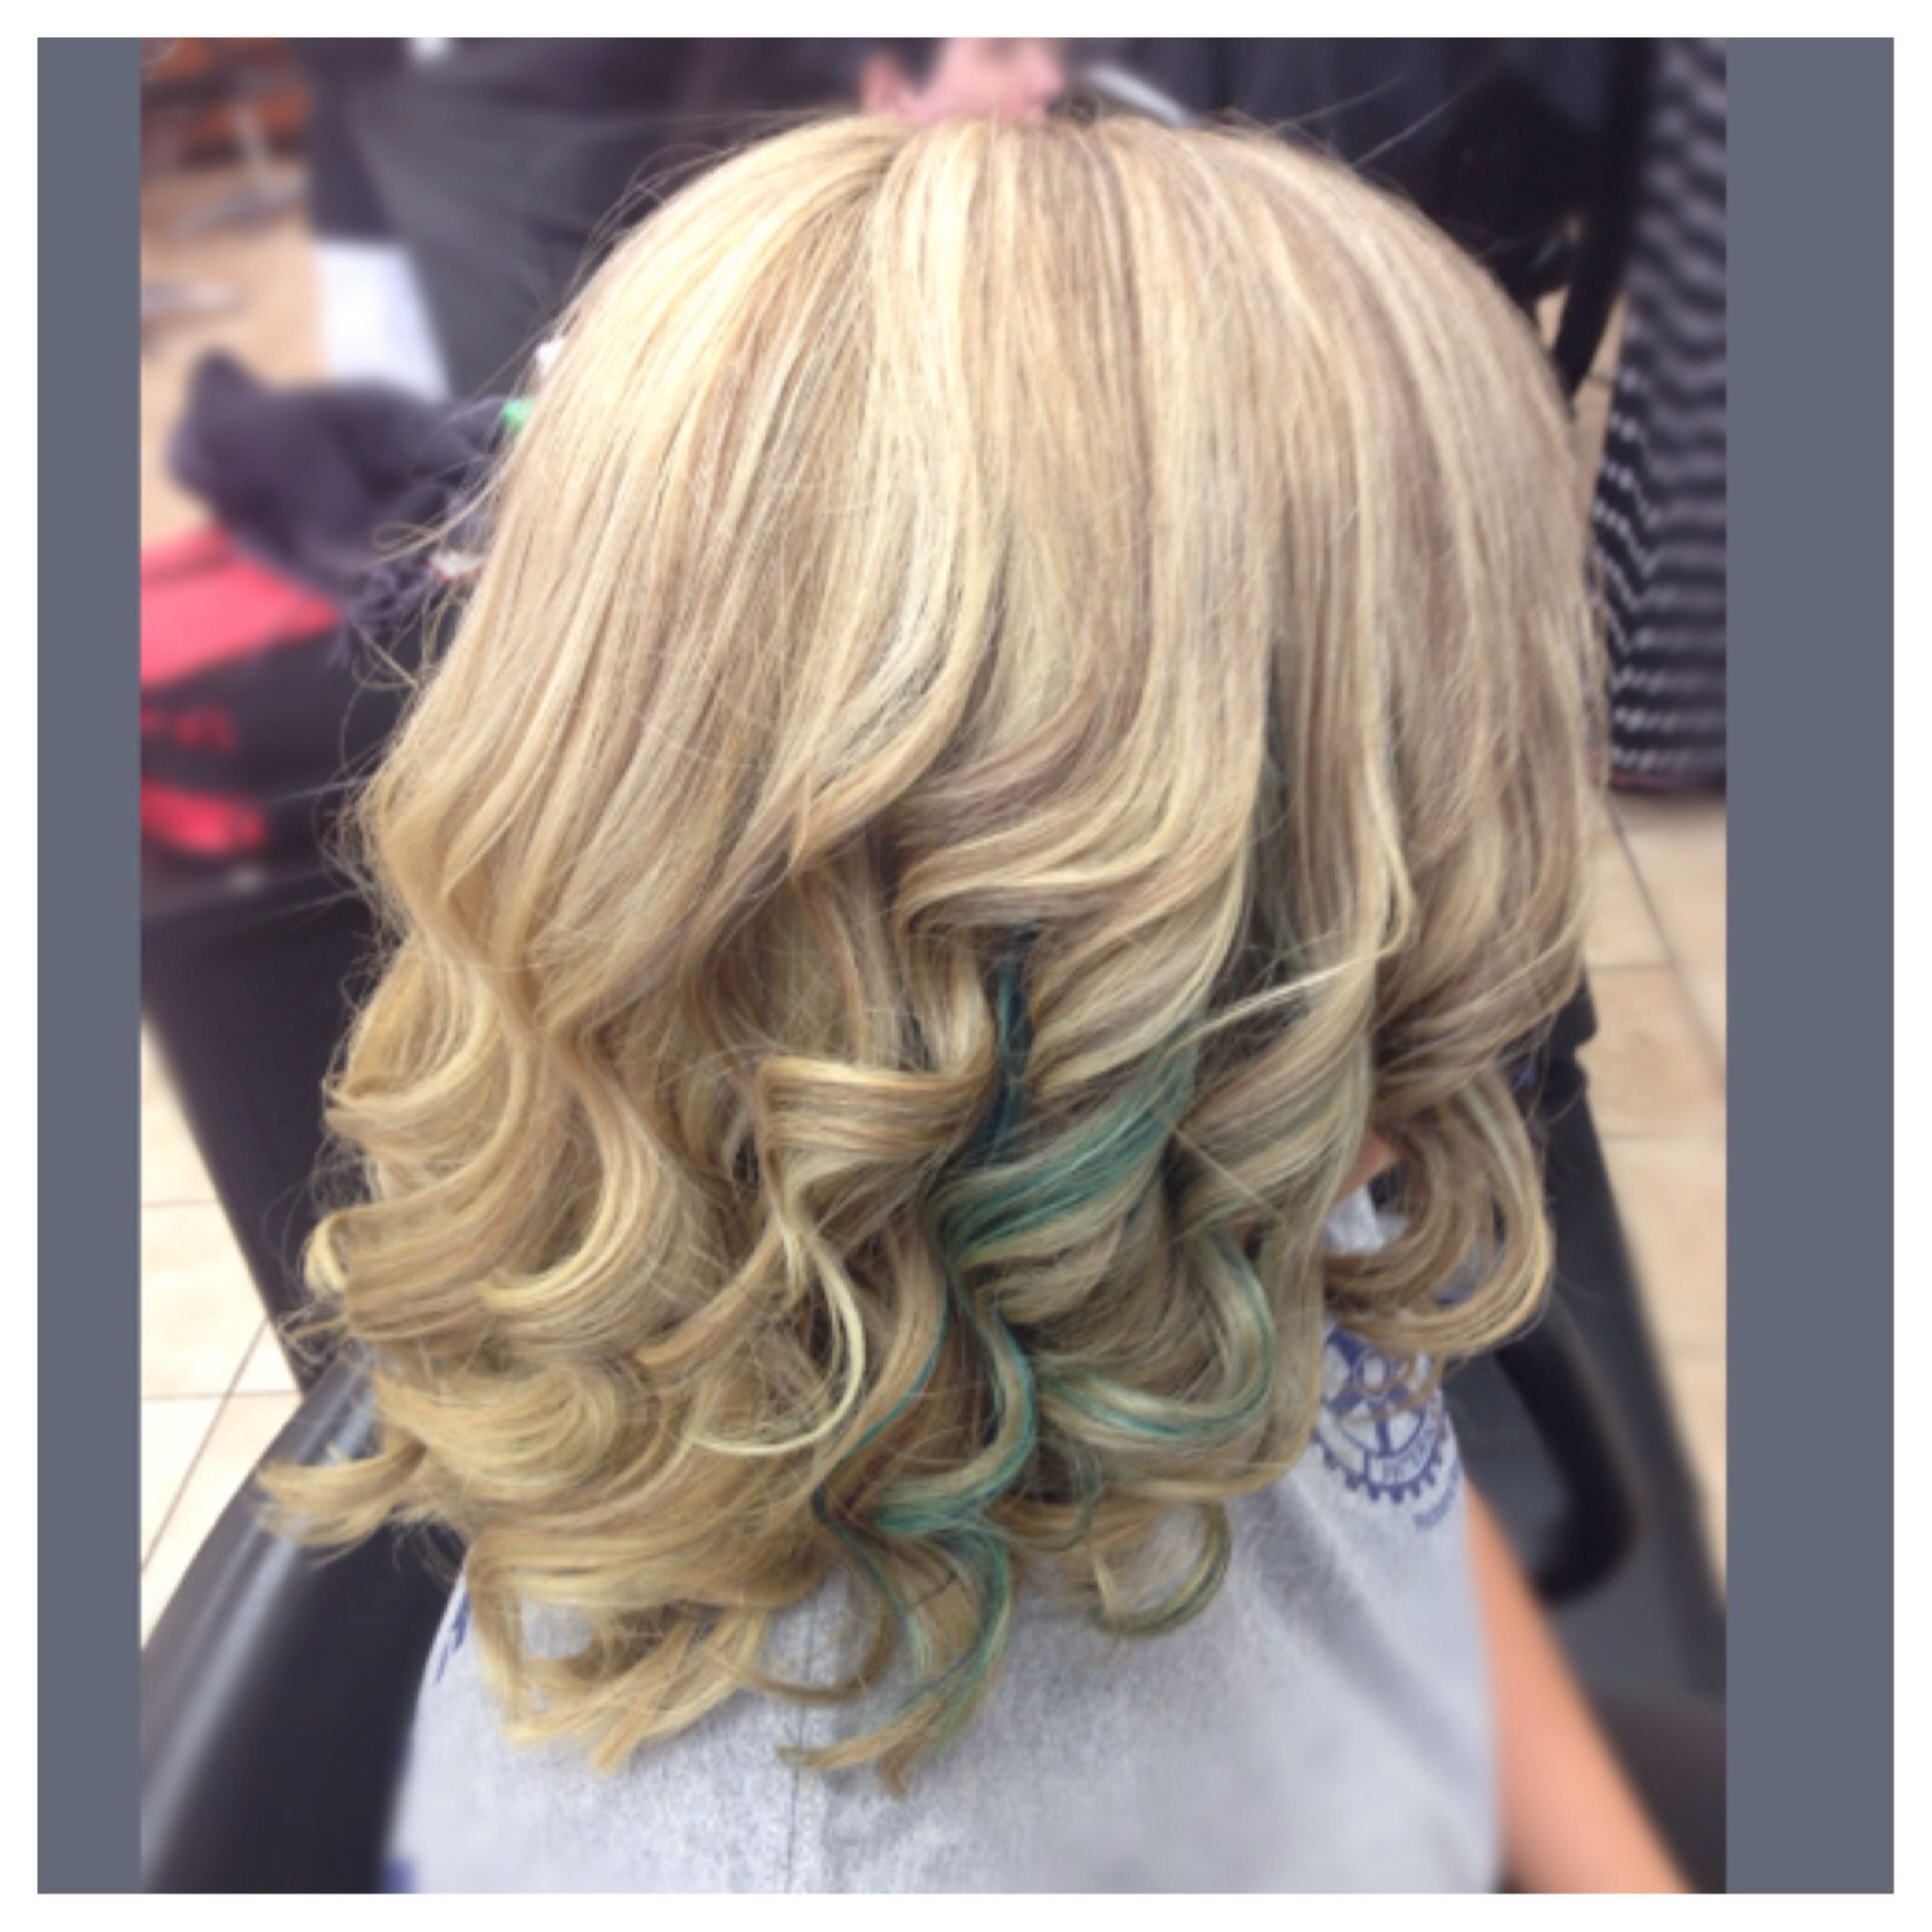 heavy foil fine lowlights on blonde hair with a teal panel for